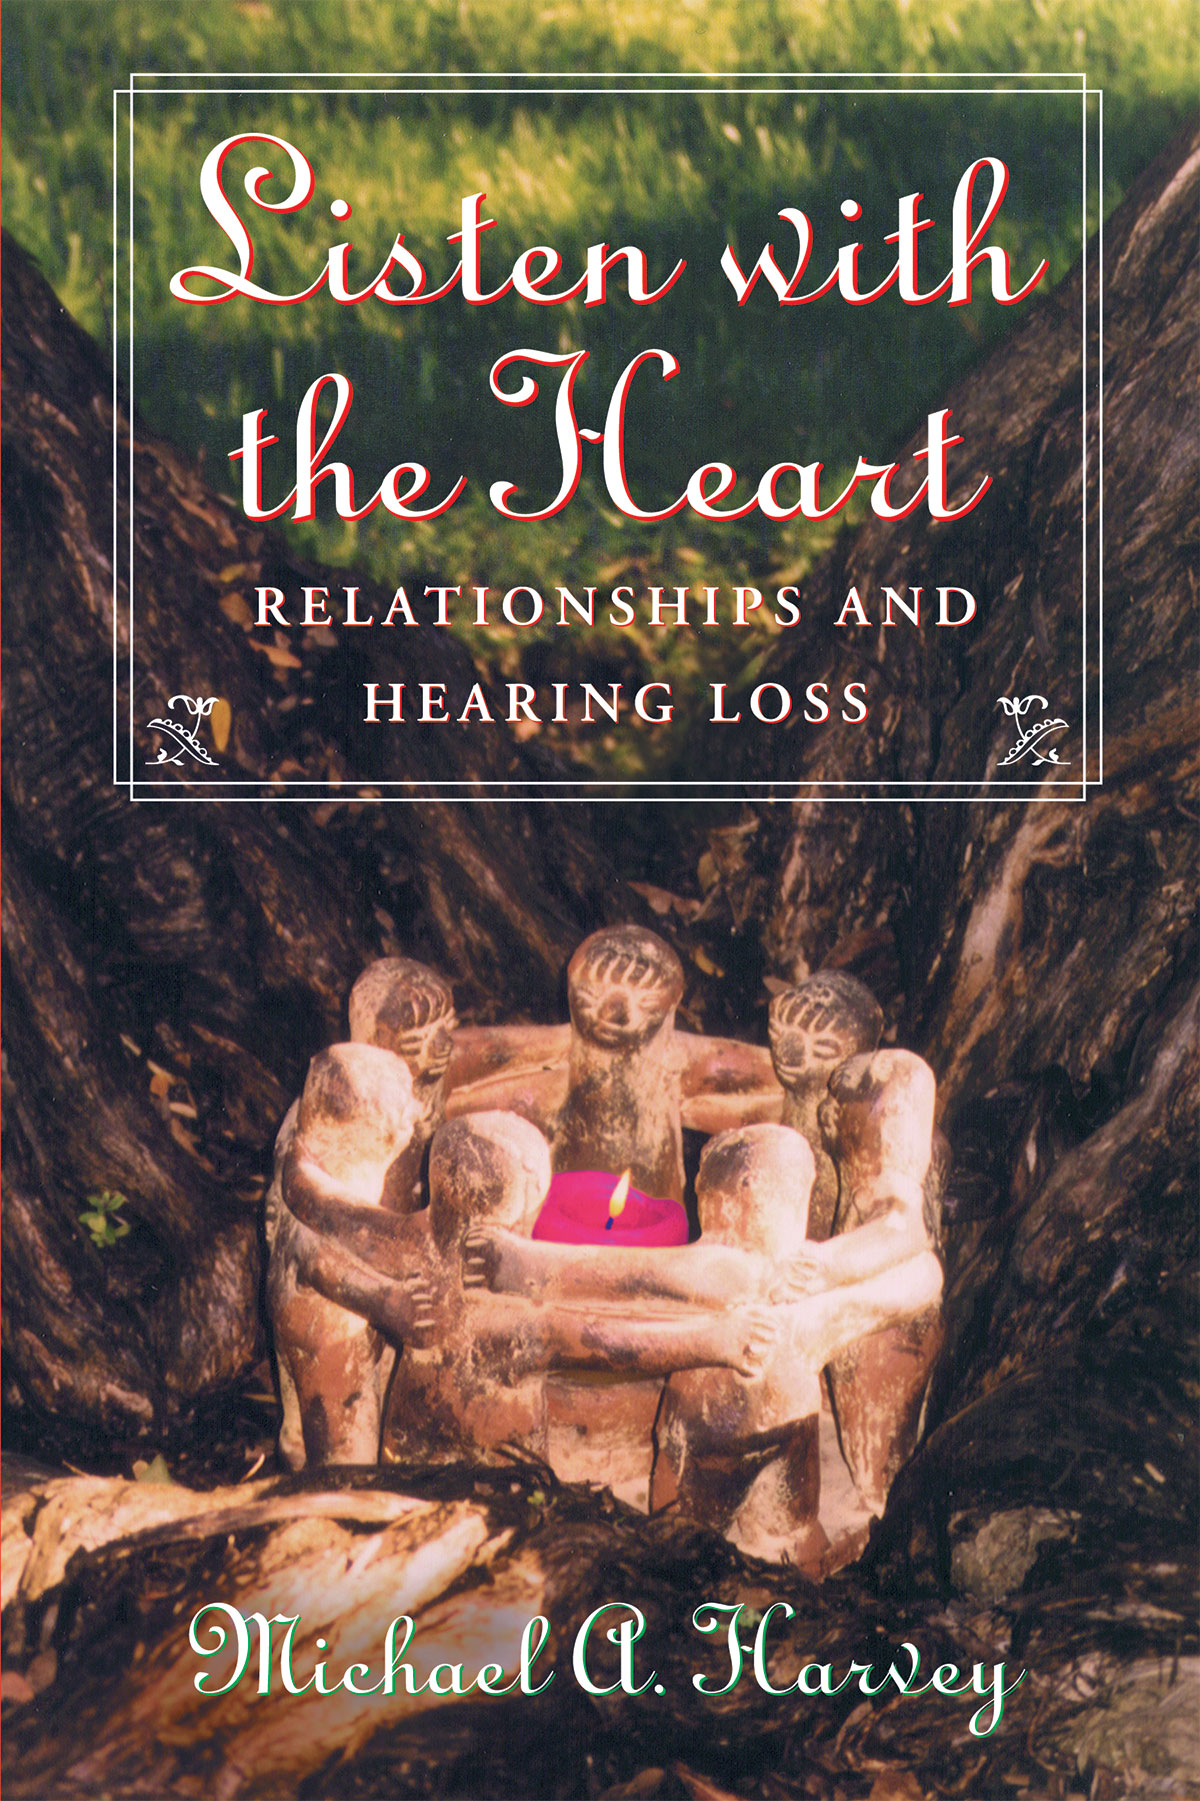 Listen with the Heart: Relationships and Hearing Loss